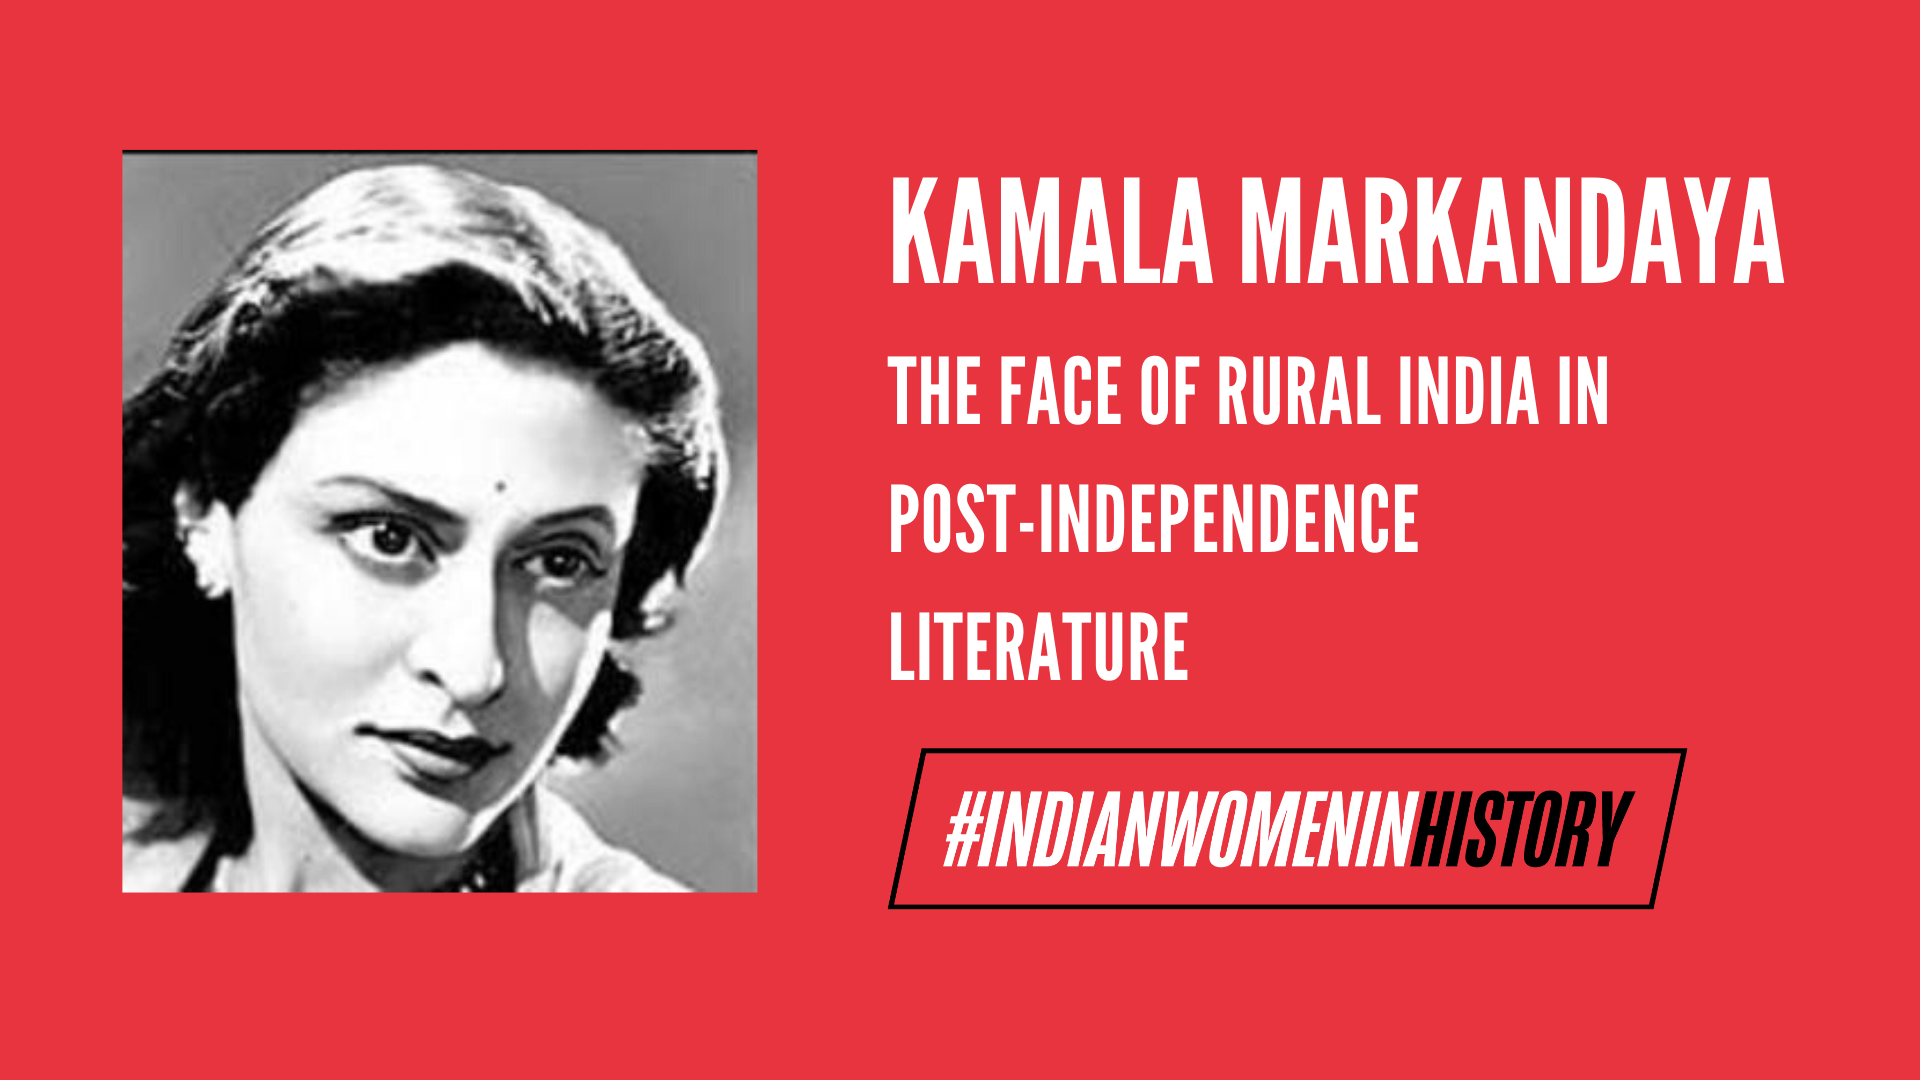 Kamala Markandaya: The Face Of Rural India In Post-Independence Literature | #IndianWomenInHistory